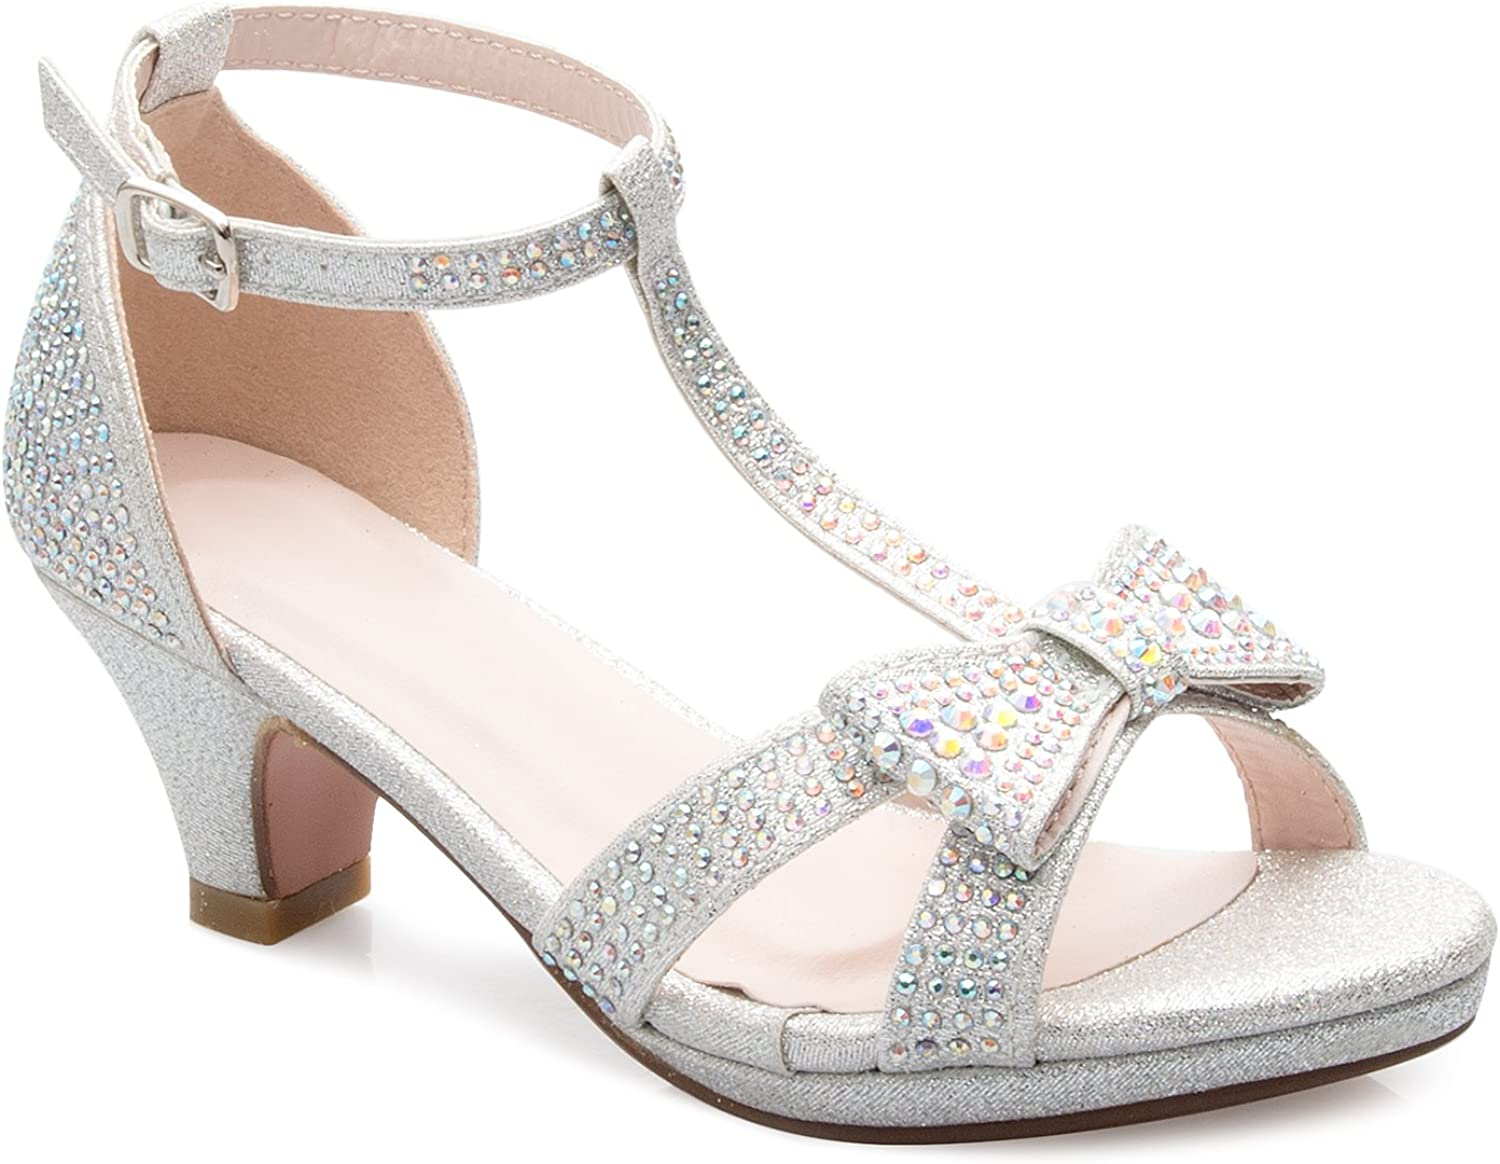 Max 52% OFF Sales results No. 1 OLIVIA K Girl's Glitter Leatherette Open Toe T Str Ankle Strappy